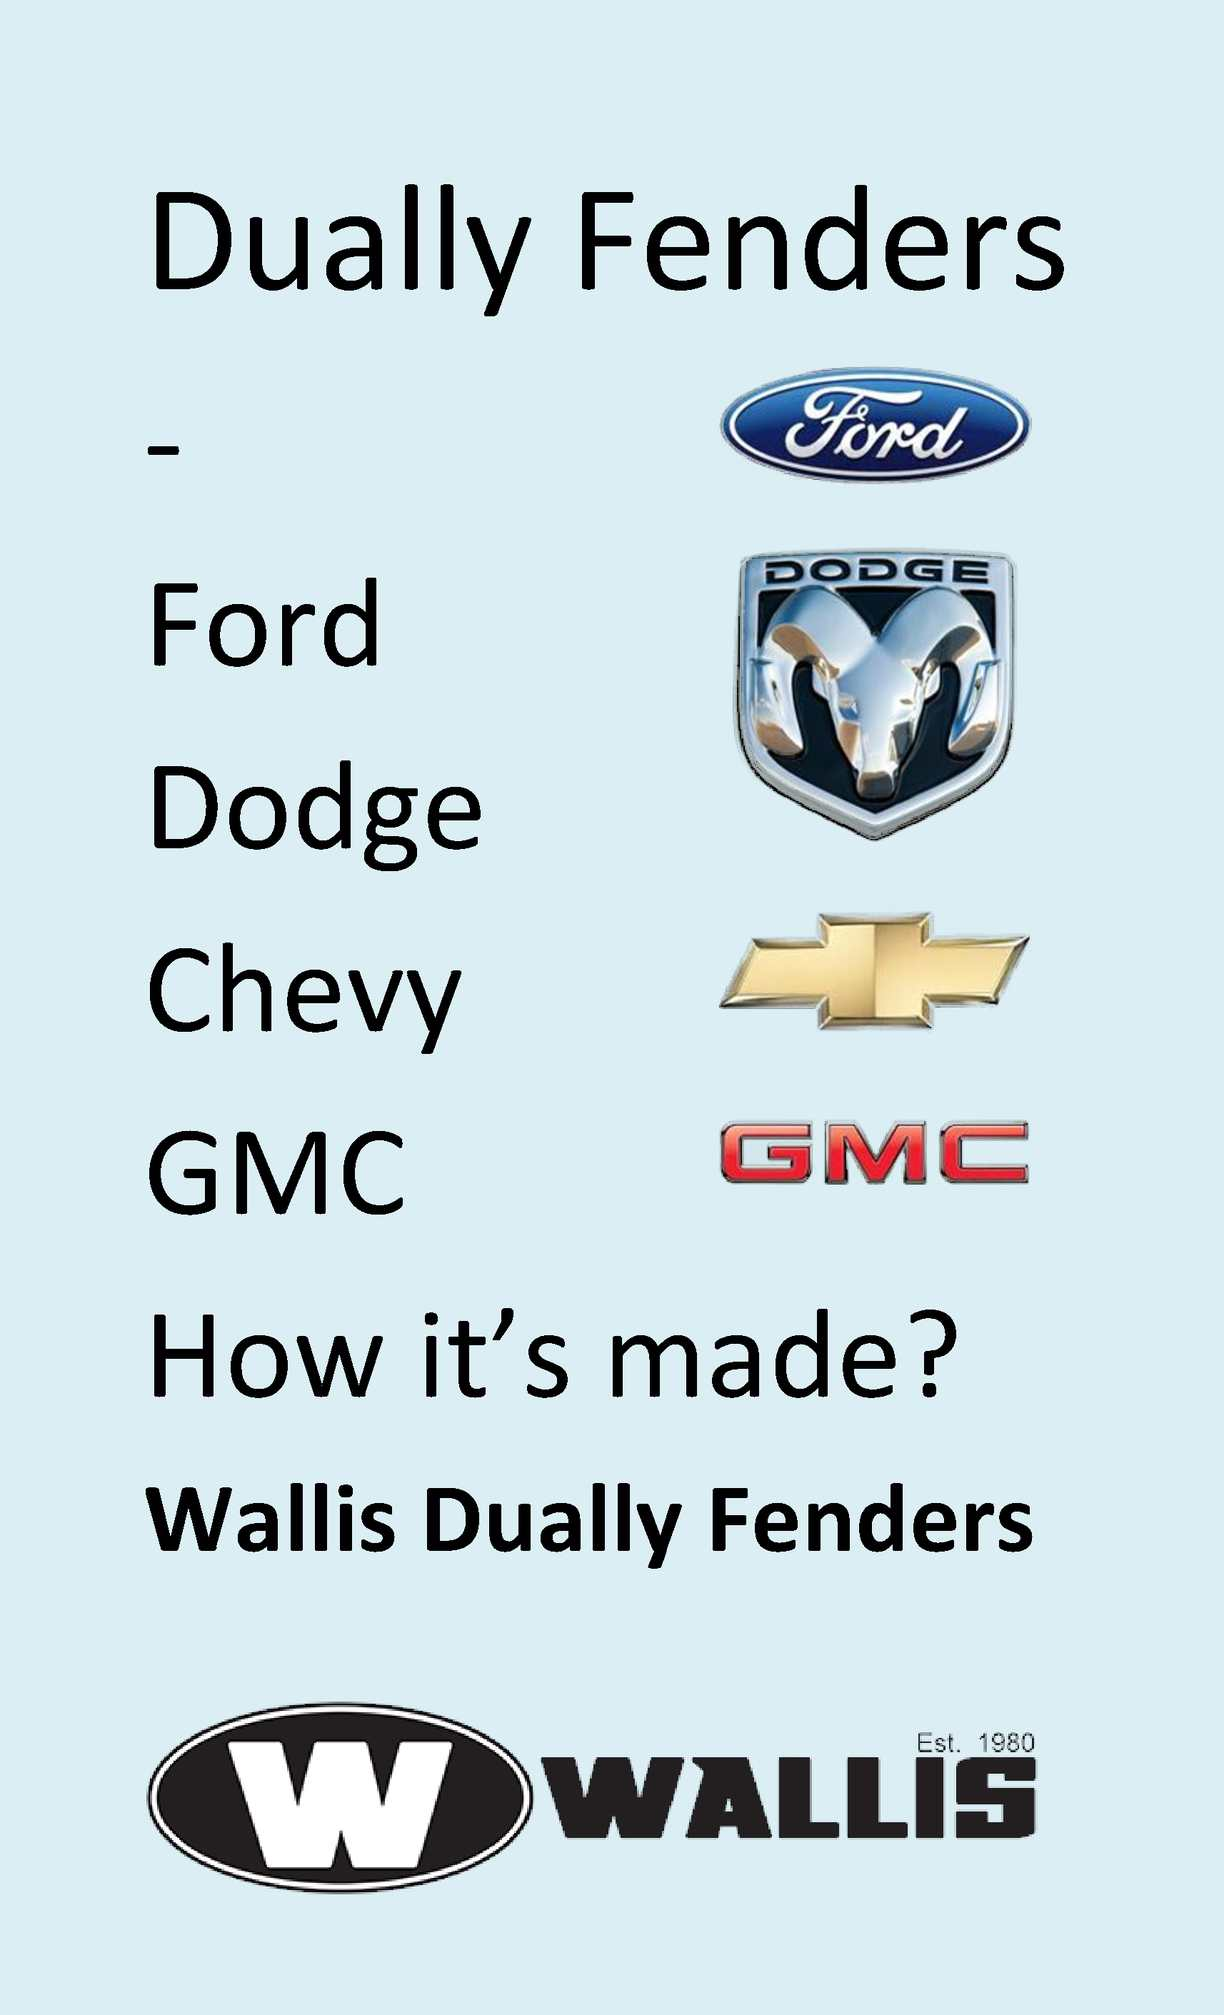 Ford Dually Fenders Craigslist >> Calaméo - Dually Fenders for Ford, Dodge, Chevy, GMC